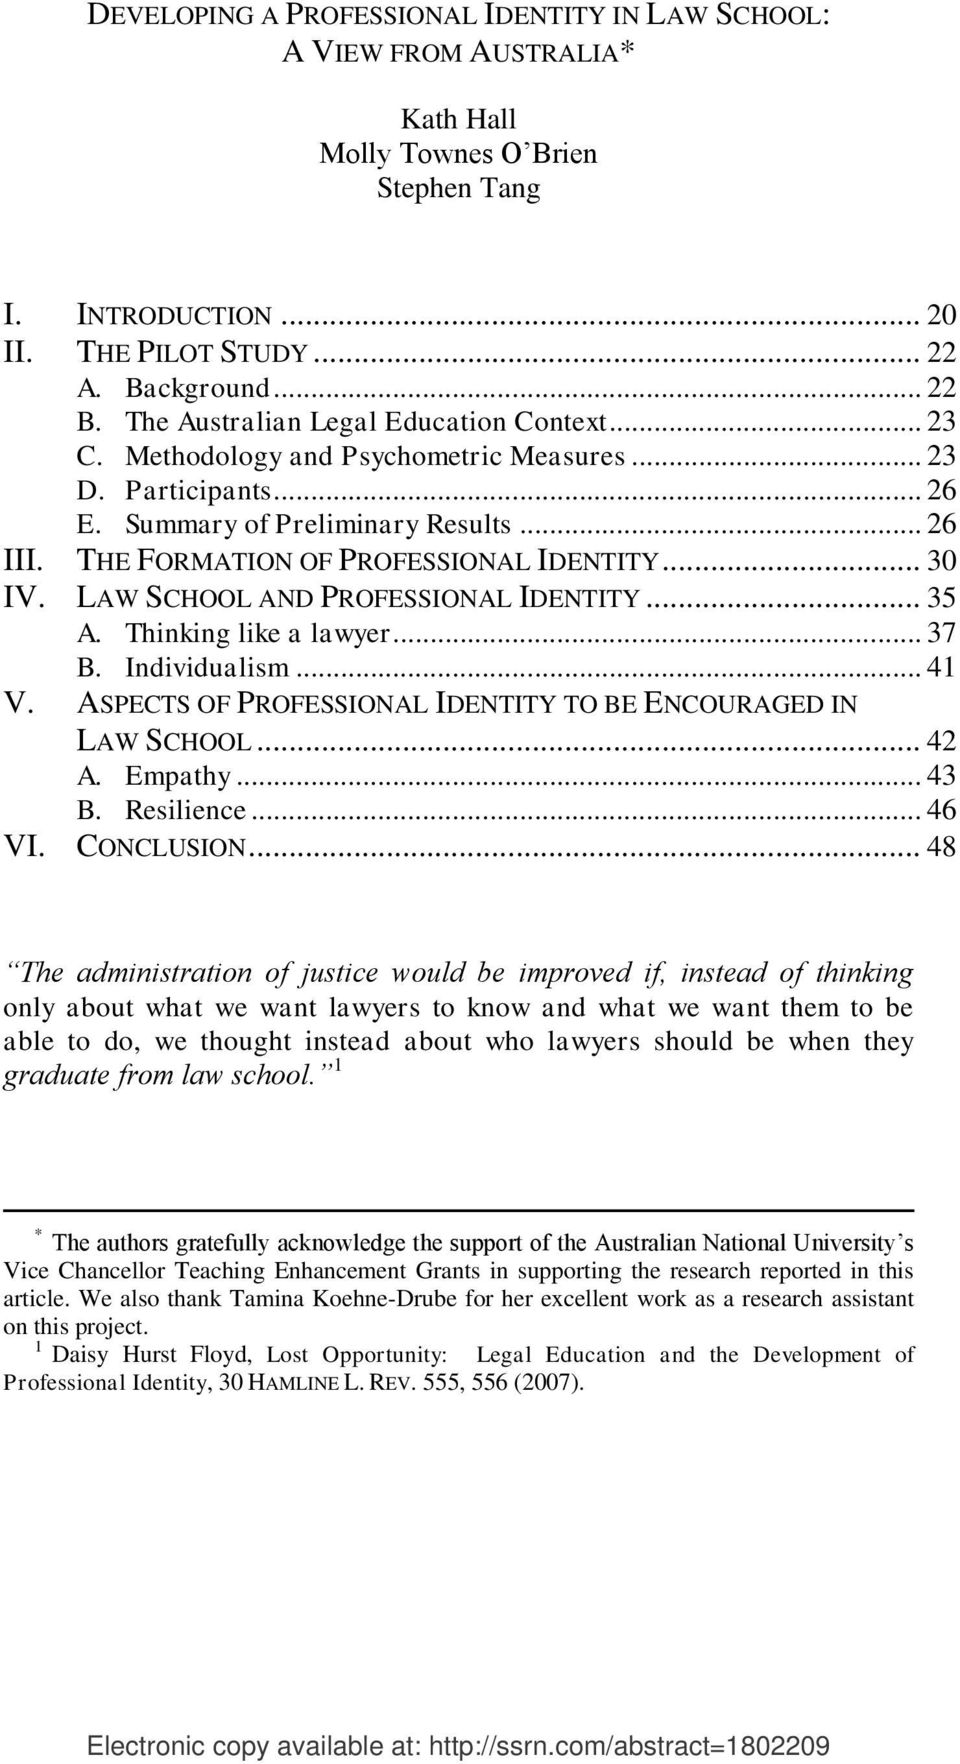 .. 30 IV. LAW SCHOOL AND PROFESSIONAL IDENTITY... 35 A. Thinking like a lawyer... 37 B. Individualism... 41 V. ASPECTS OF PROFESSIONAL IDENTITY TO BE ENCOURAGED IN LAW SCHOOL... 42 A. Empathy... 43 B.